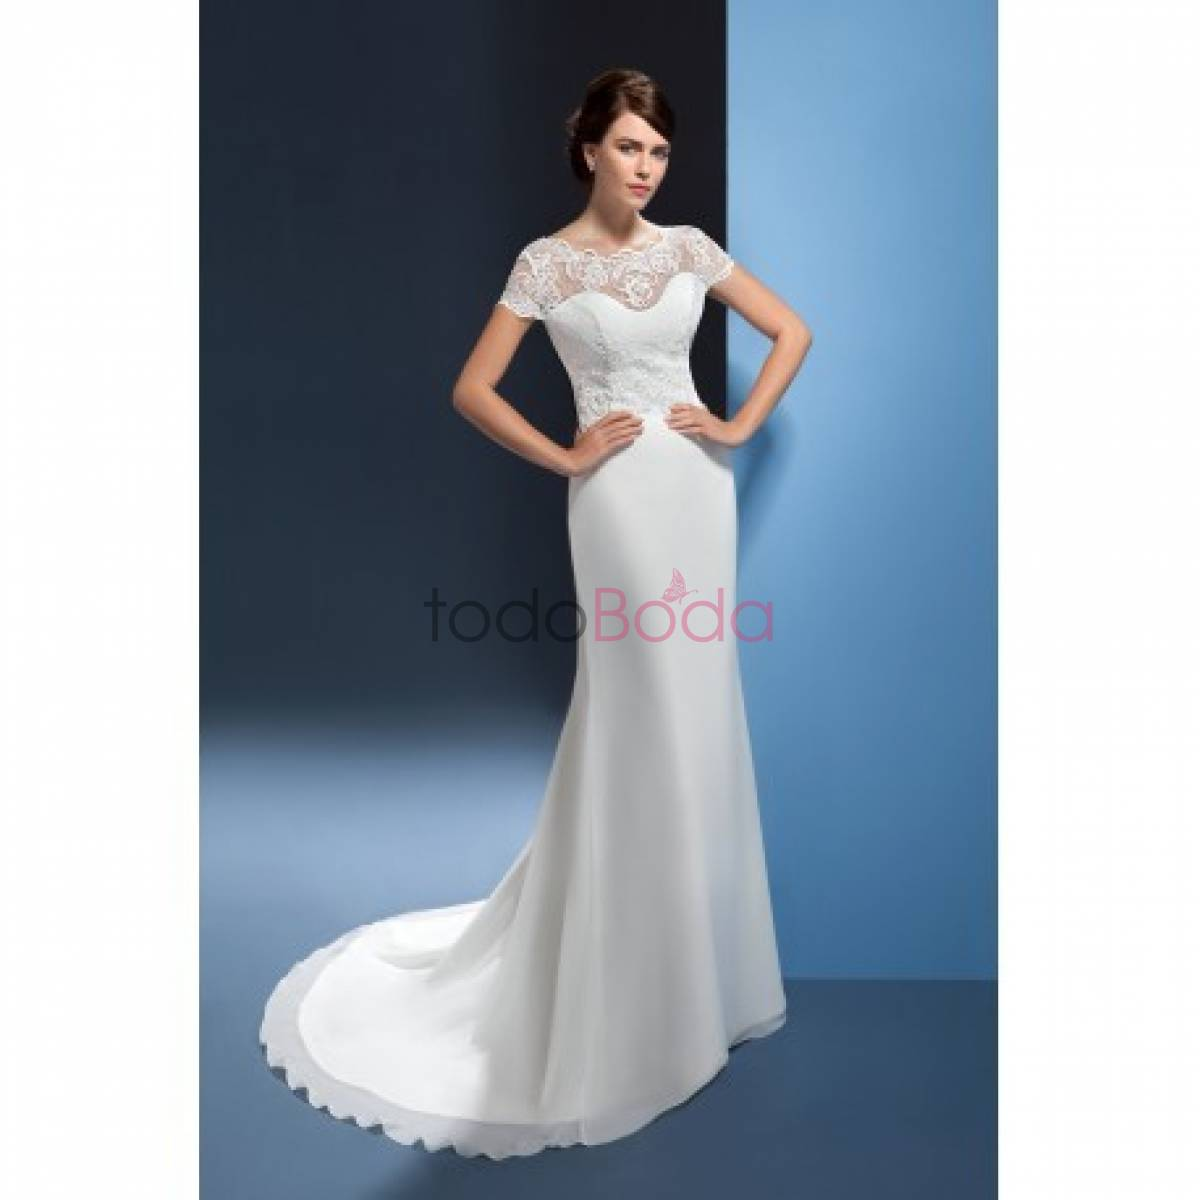 Contemporary Tiendas Outlet Vestidos De Novia Barcelona Photos - All ...